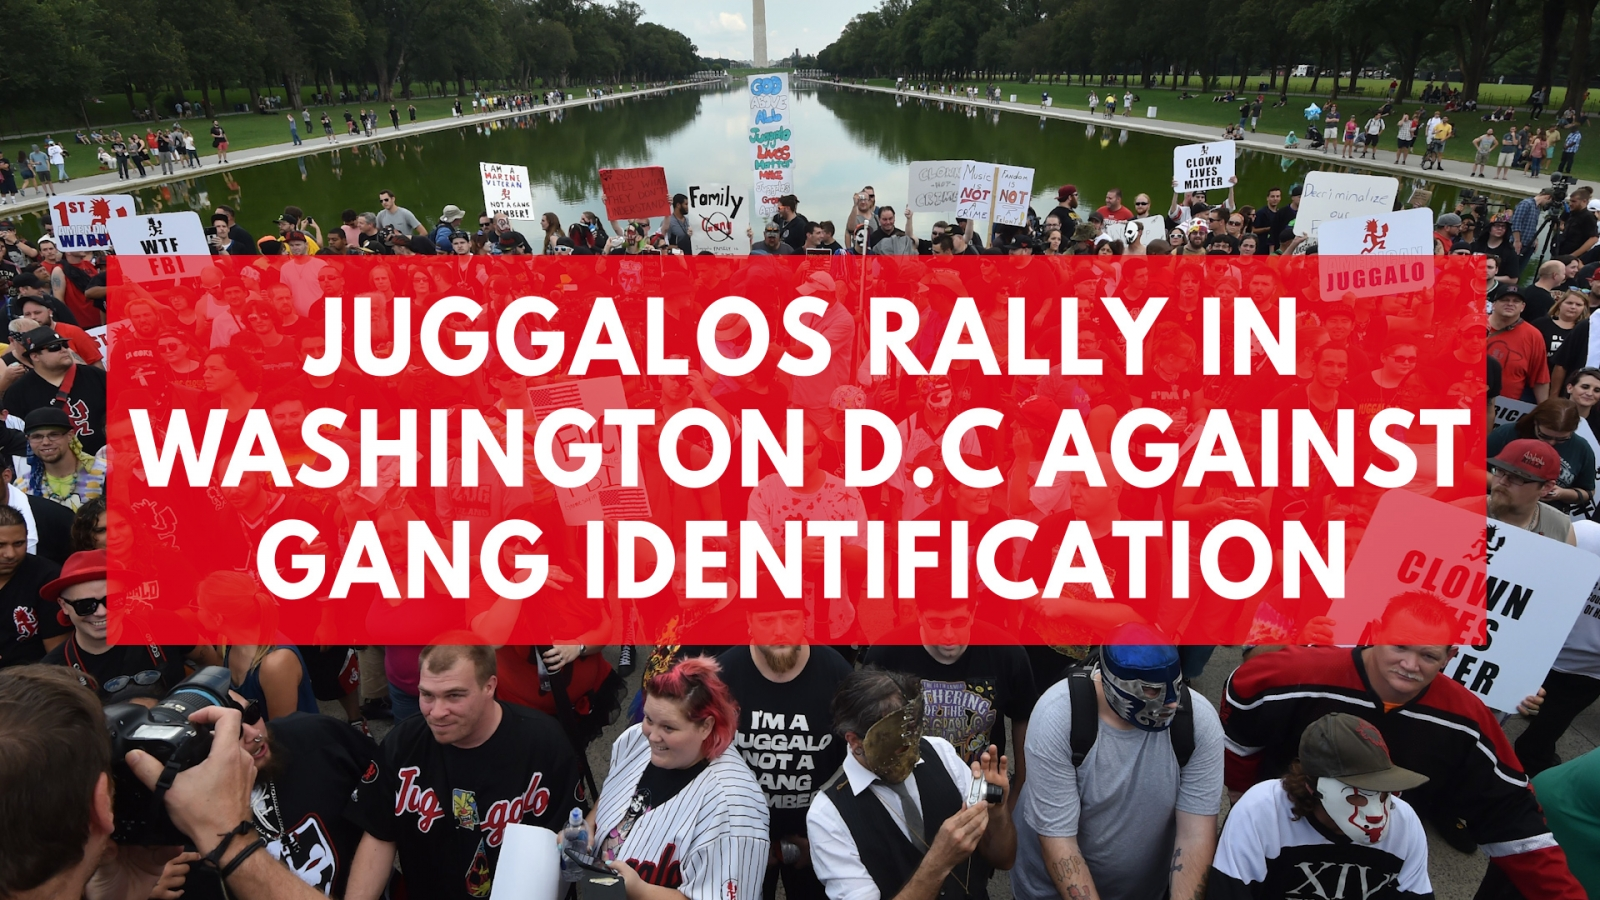 Juggalos rally in Washington DC against gang identification